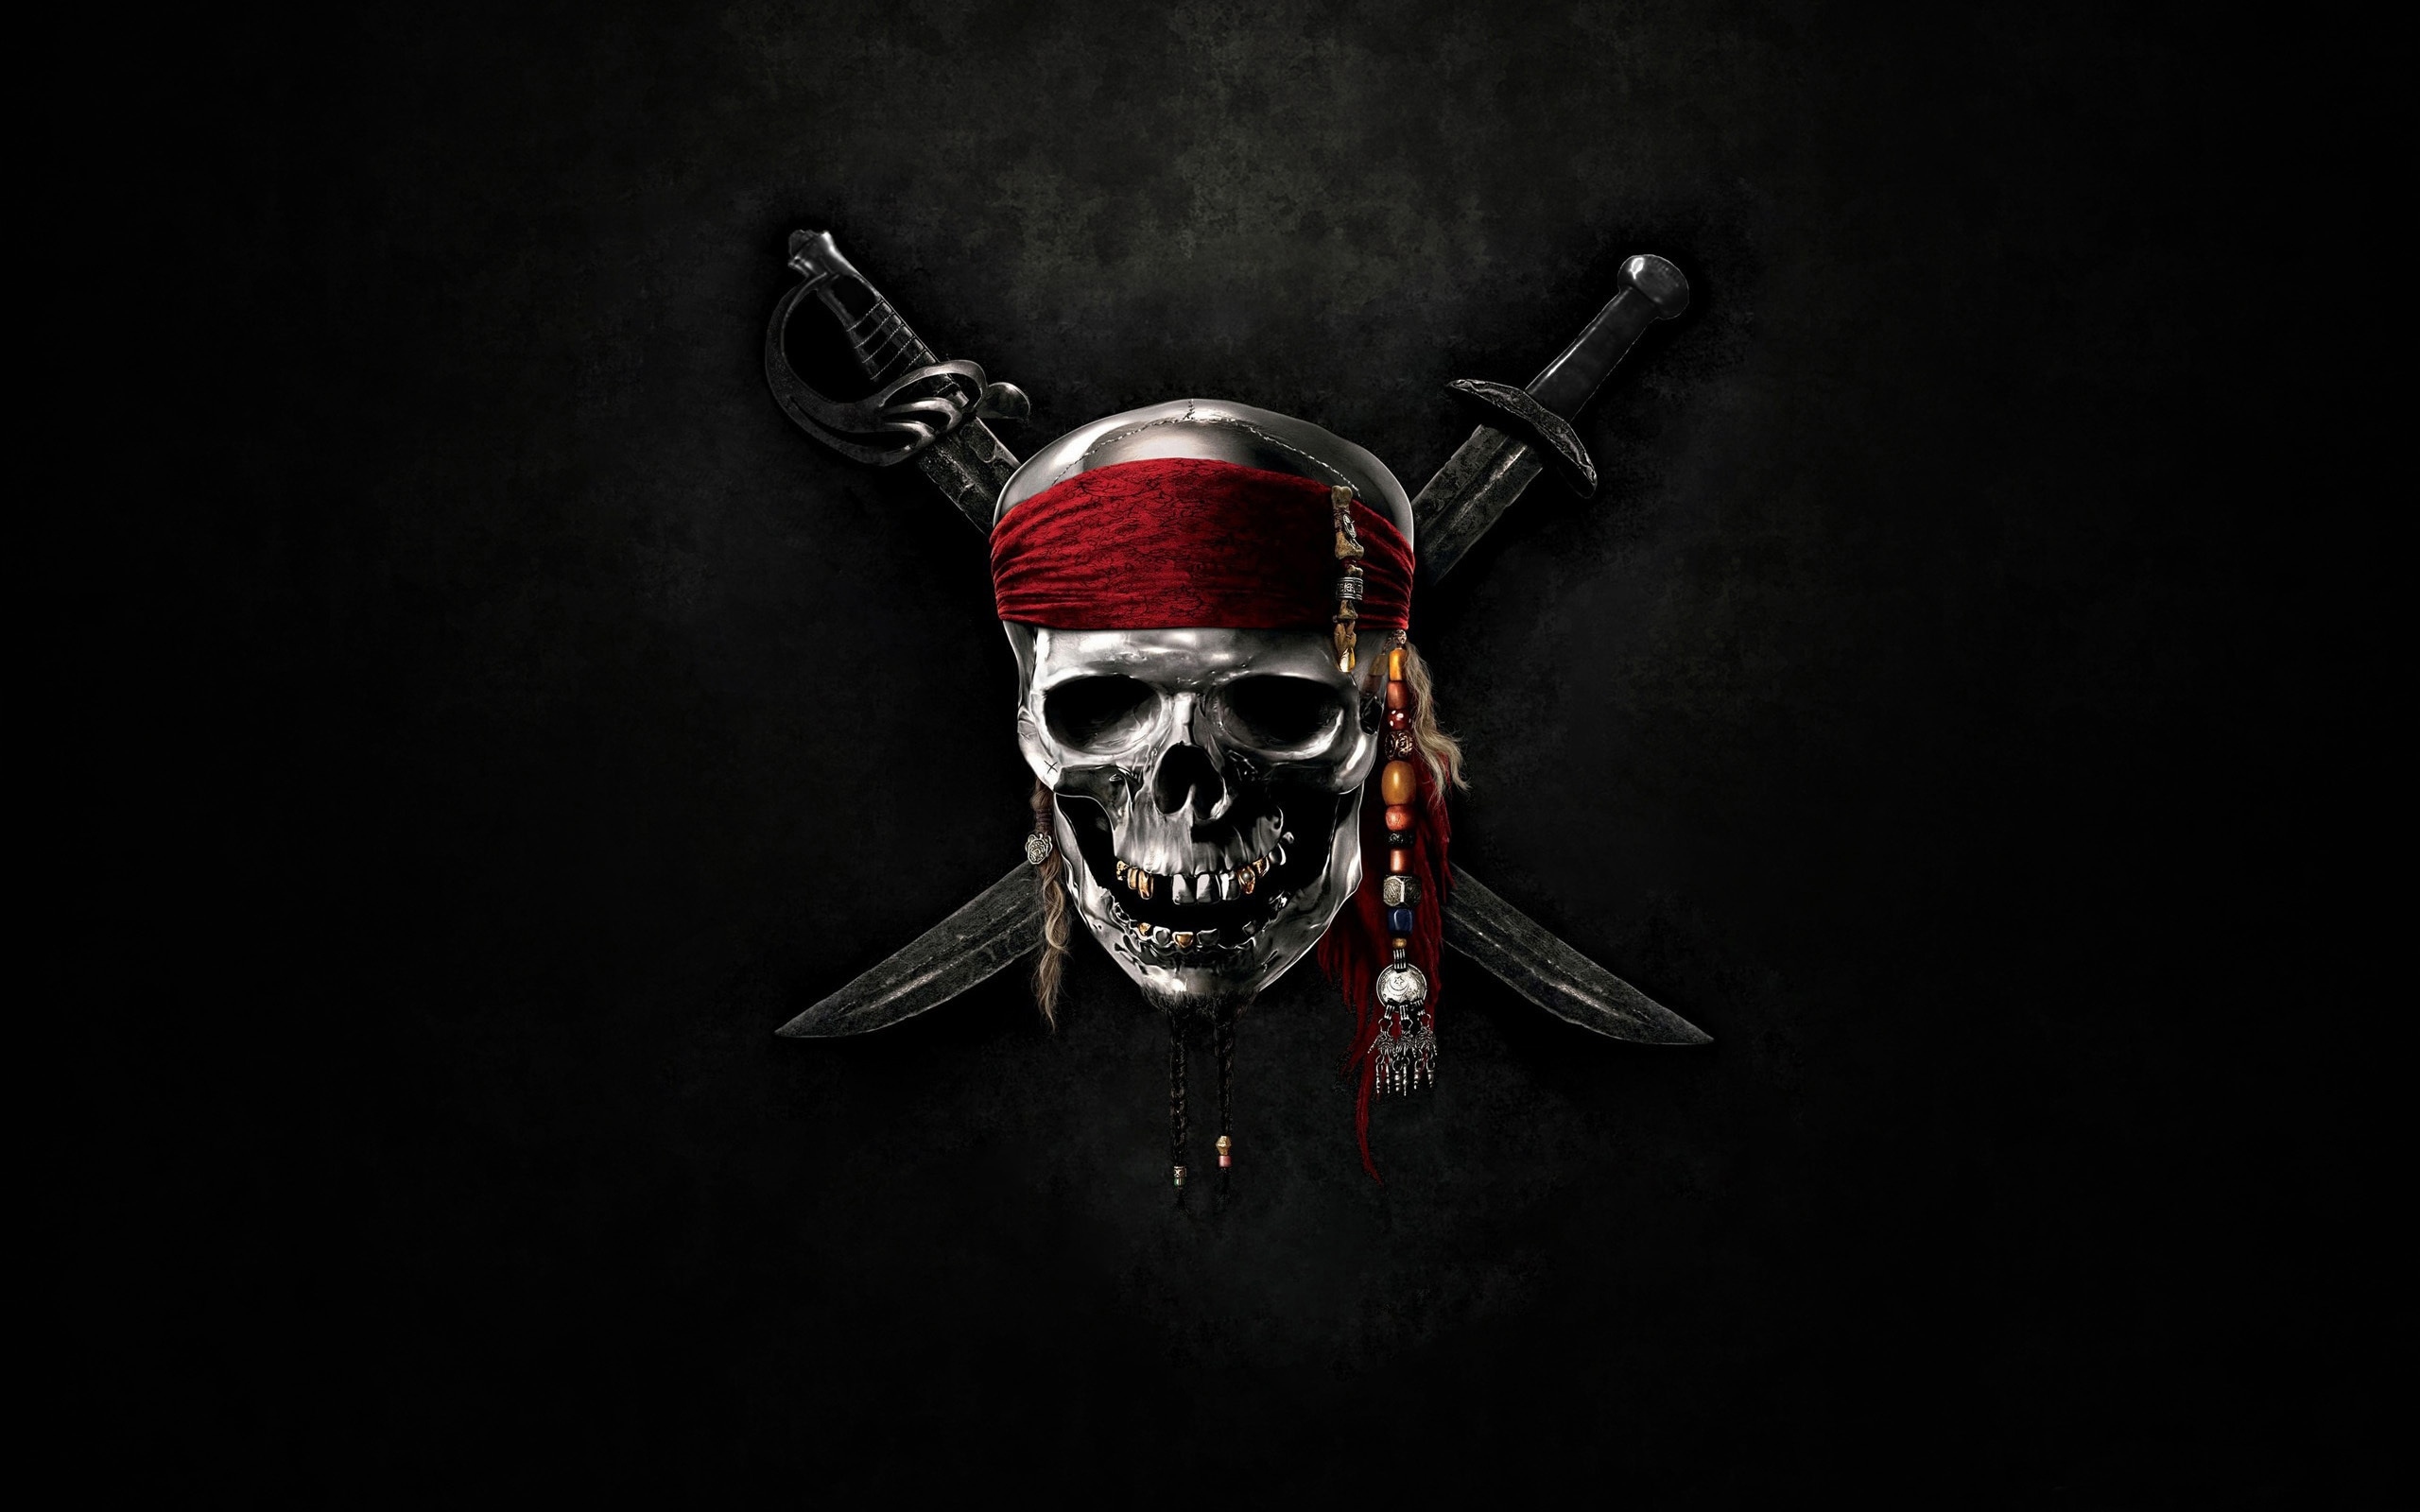 Hd Wallpaper Pirate Jolly Roger